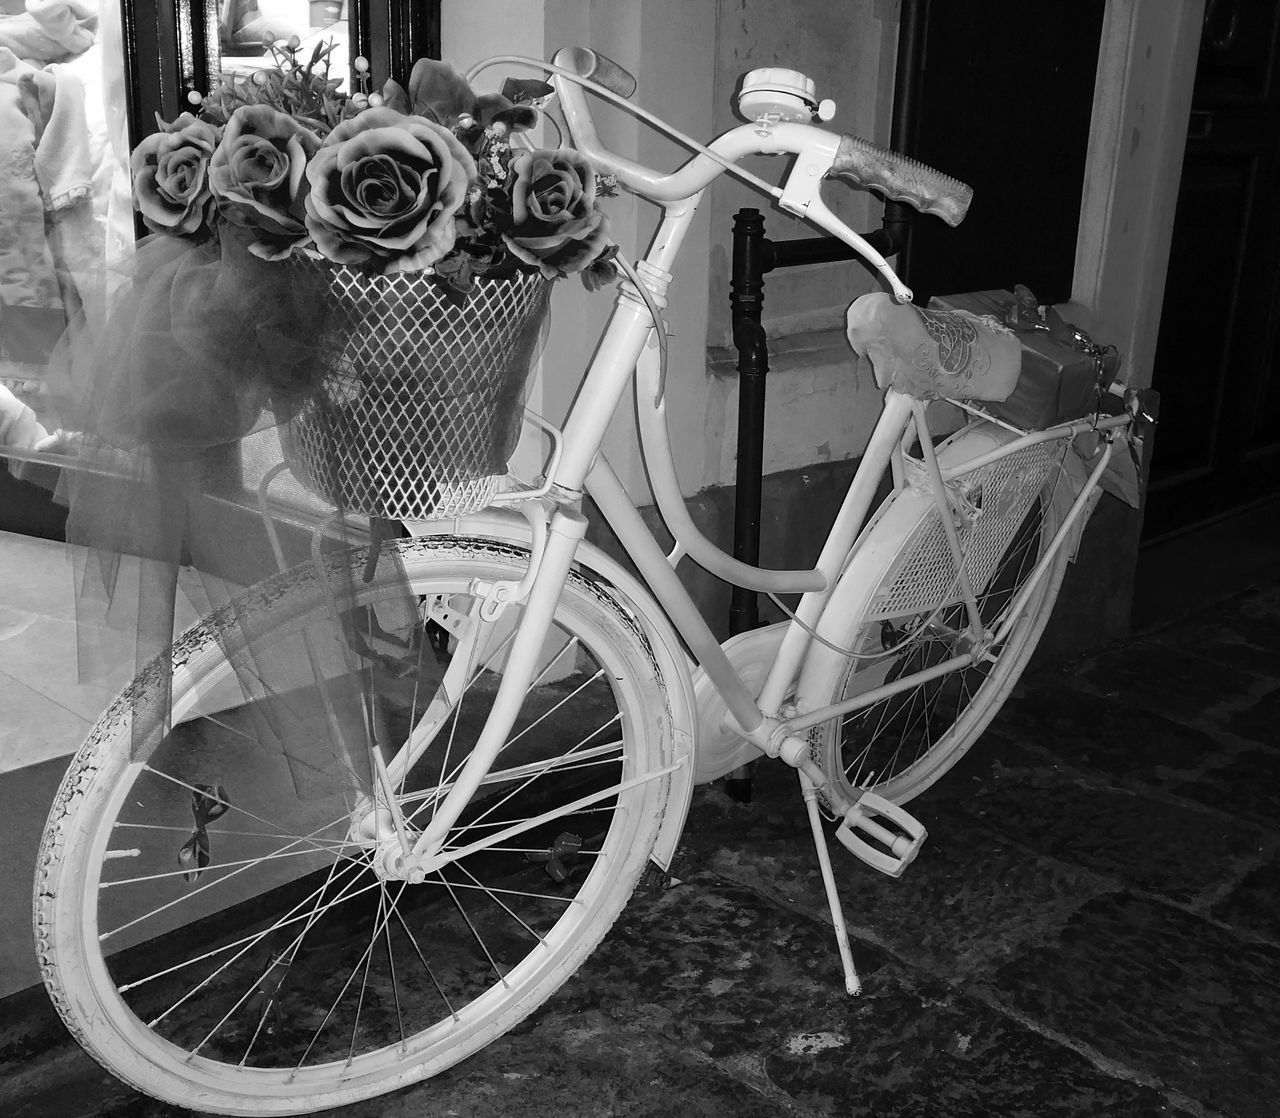 CLOSE-UP OF BICYCLE IN BASKET